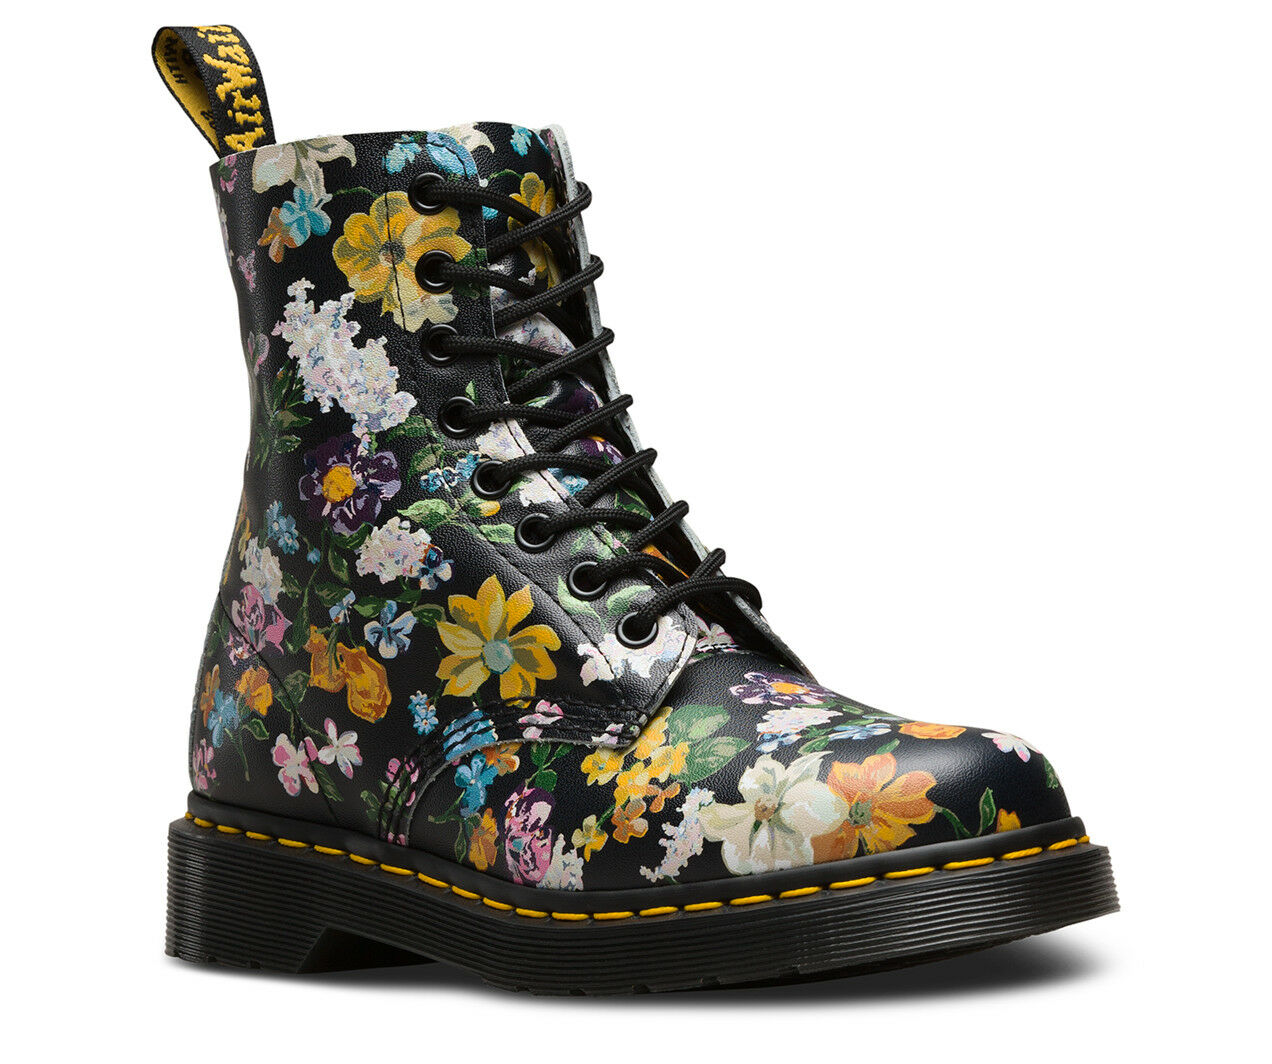 DR. MARTENS 1460 PASCAL BLACK DARCY FLORAL 8-EYE WOMENS LEATHER BOOTS 22728001